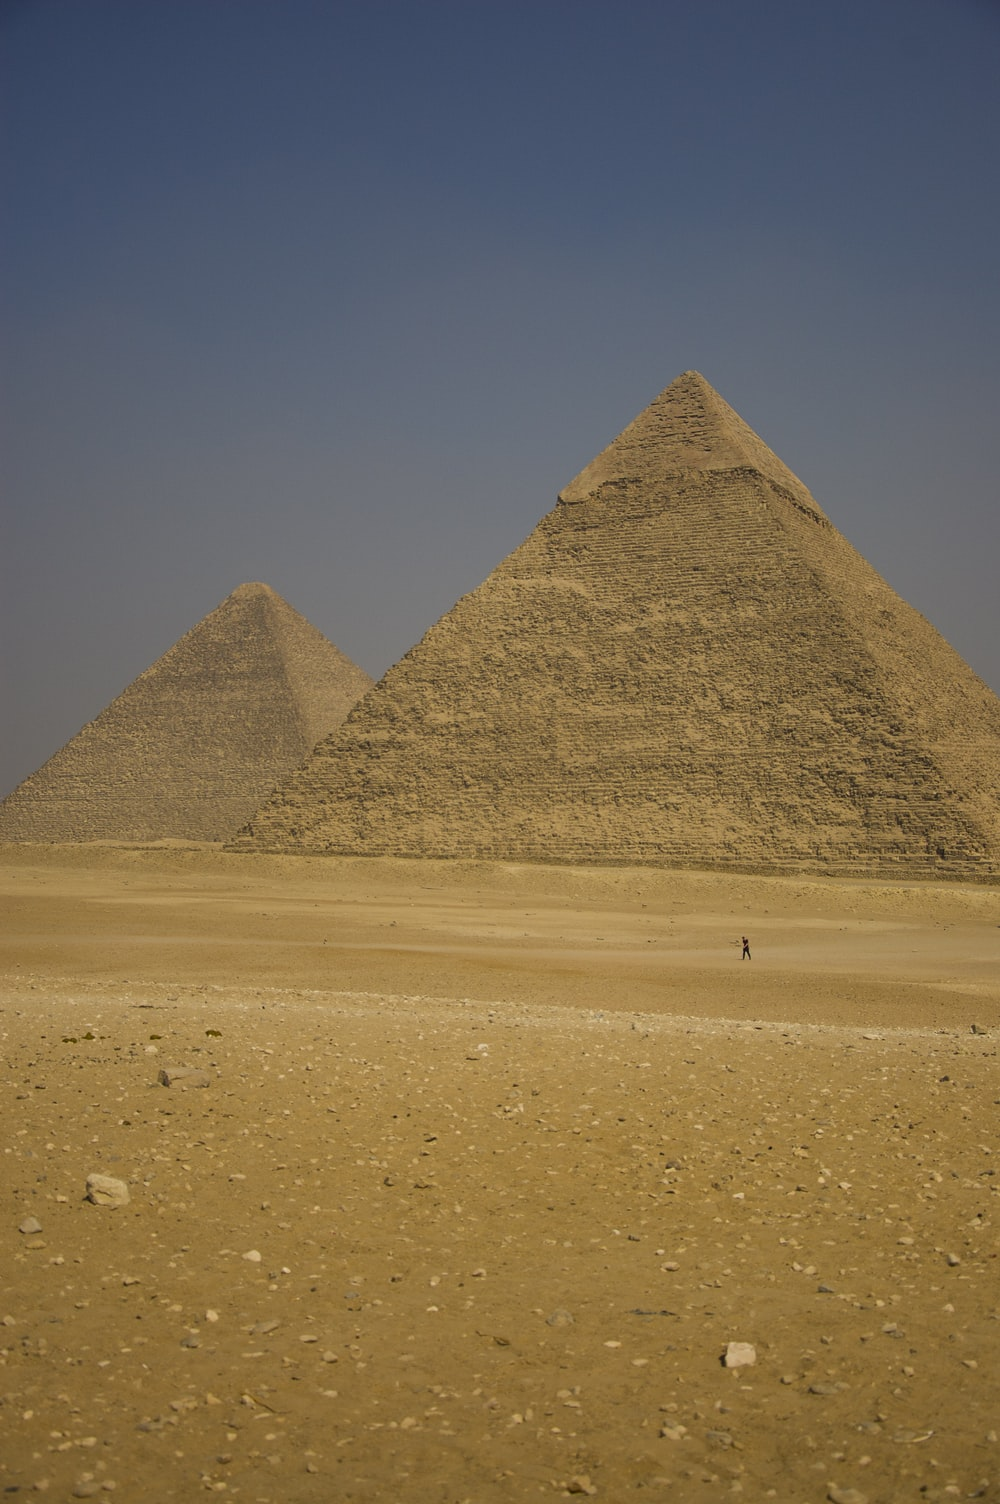 pyramid of giza in the desert